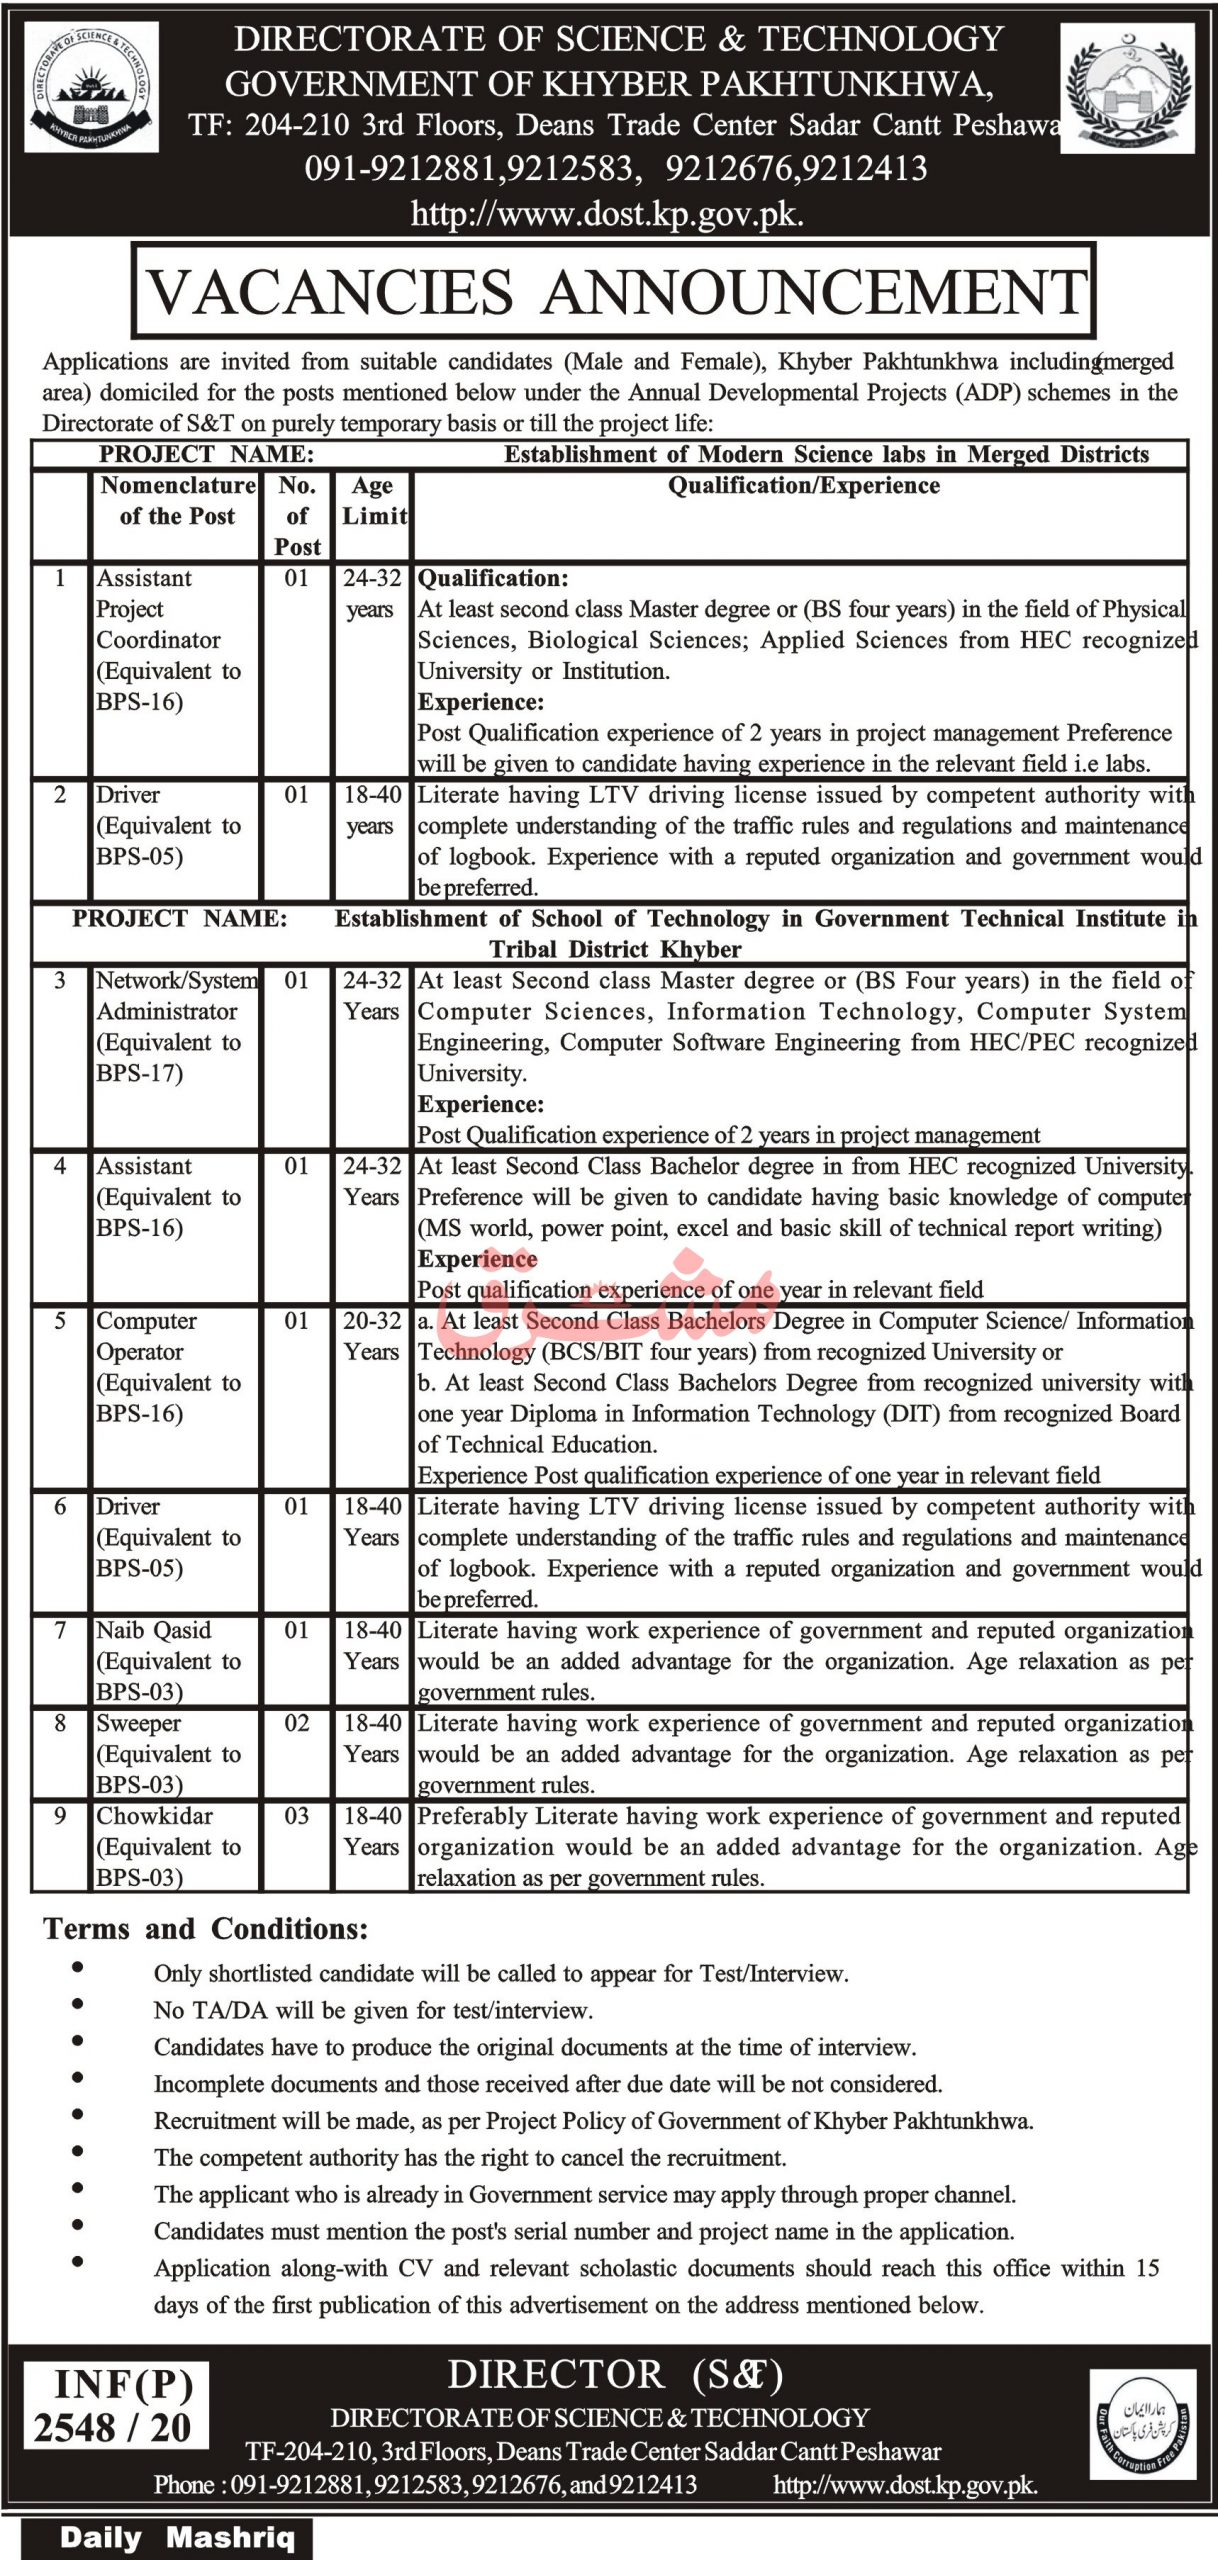 Government of Khyber Pakhtunkhwa Directorate of Science & Technology Jobs June 2020